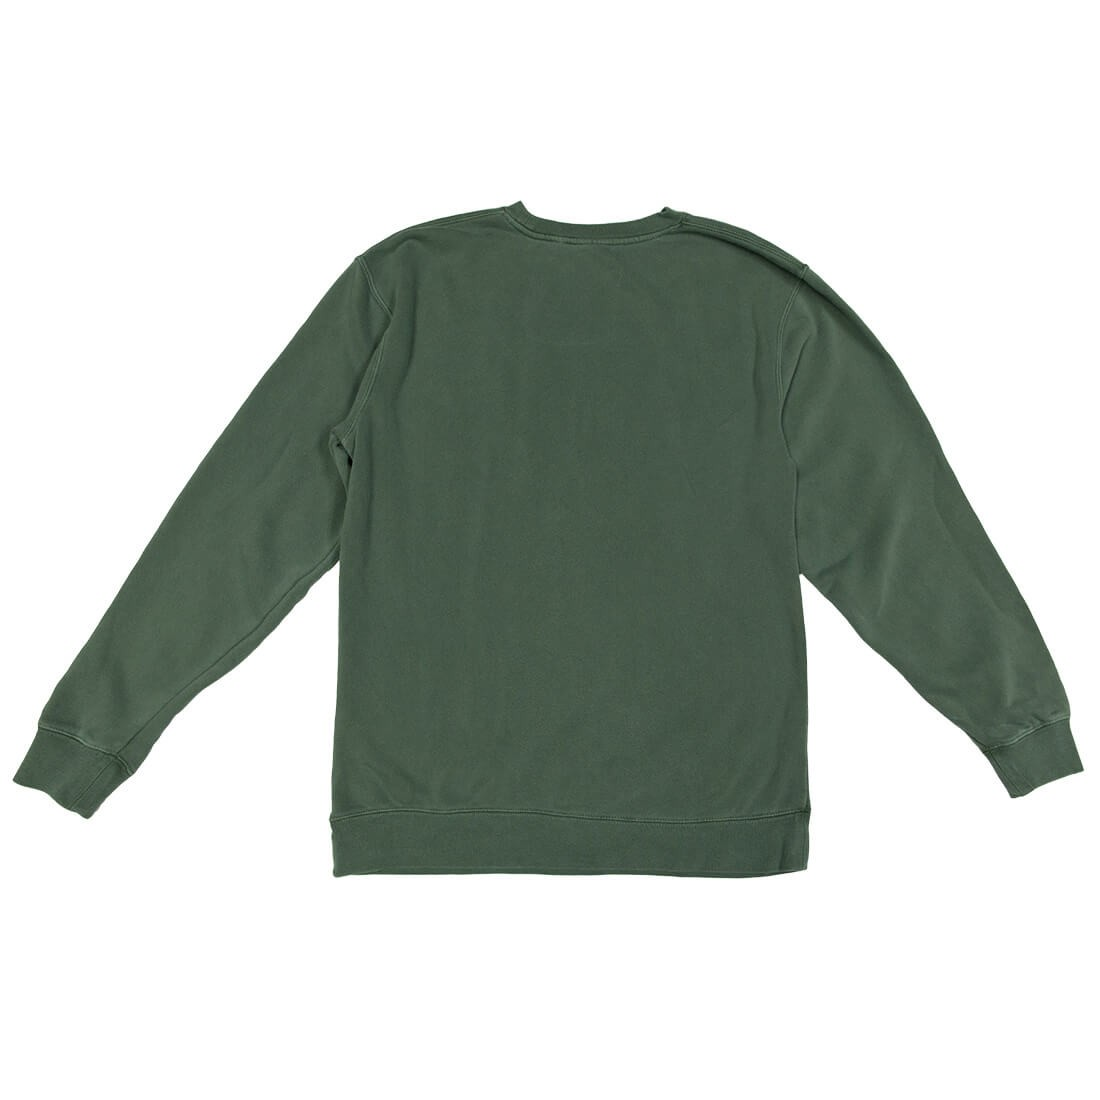 BAIT SNOOPY SUPPORT SWEAT - 204-SNP-SWT-001